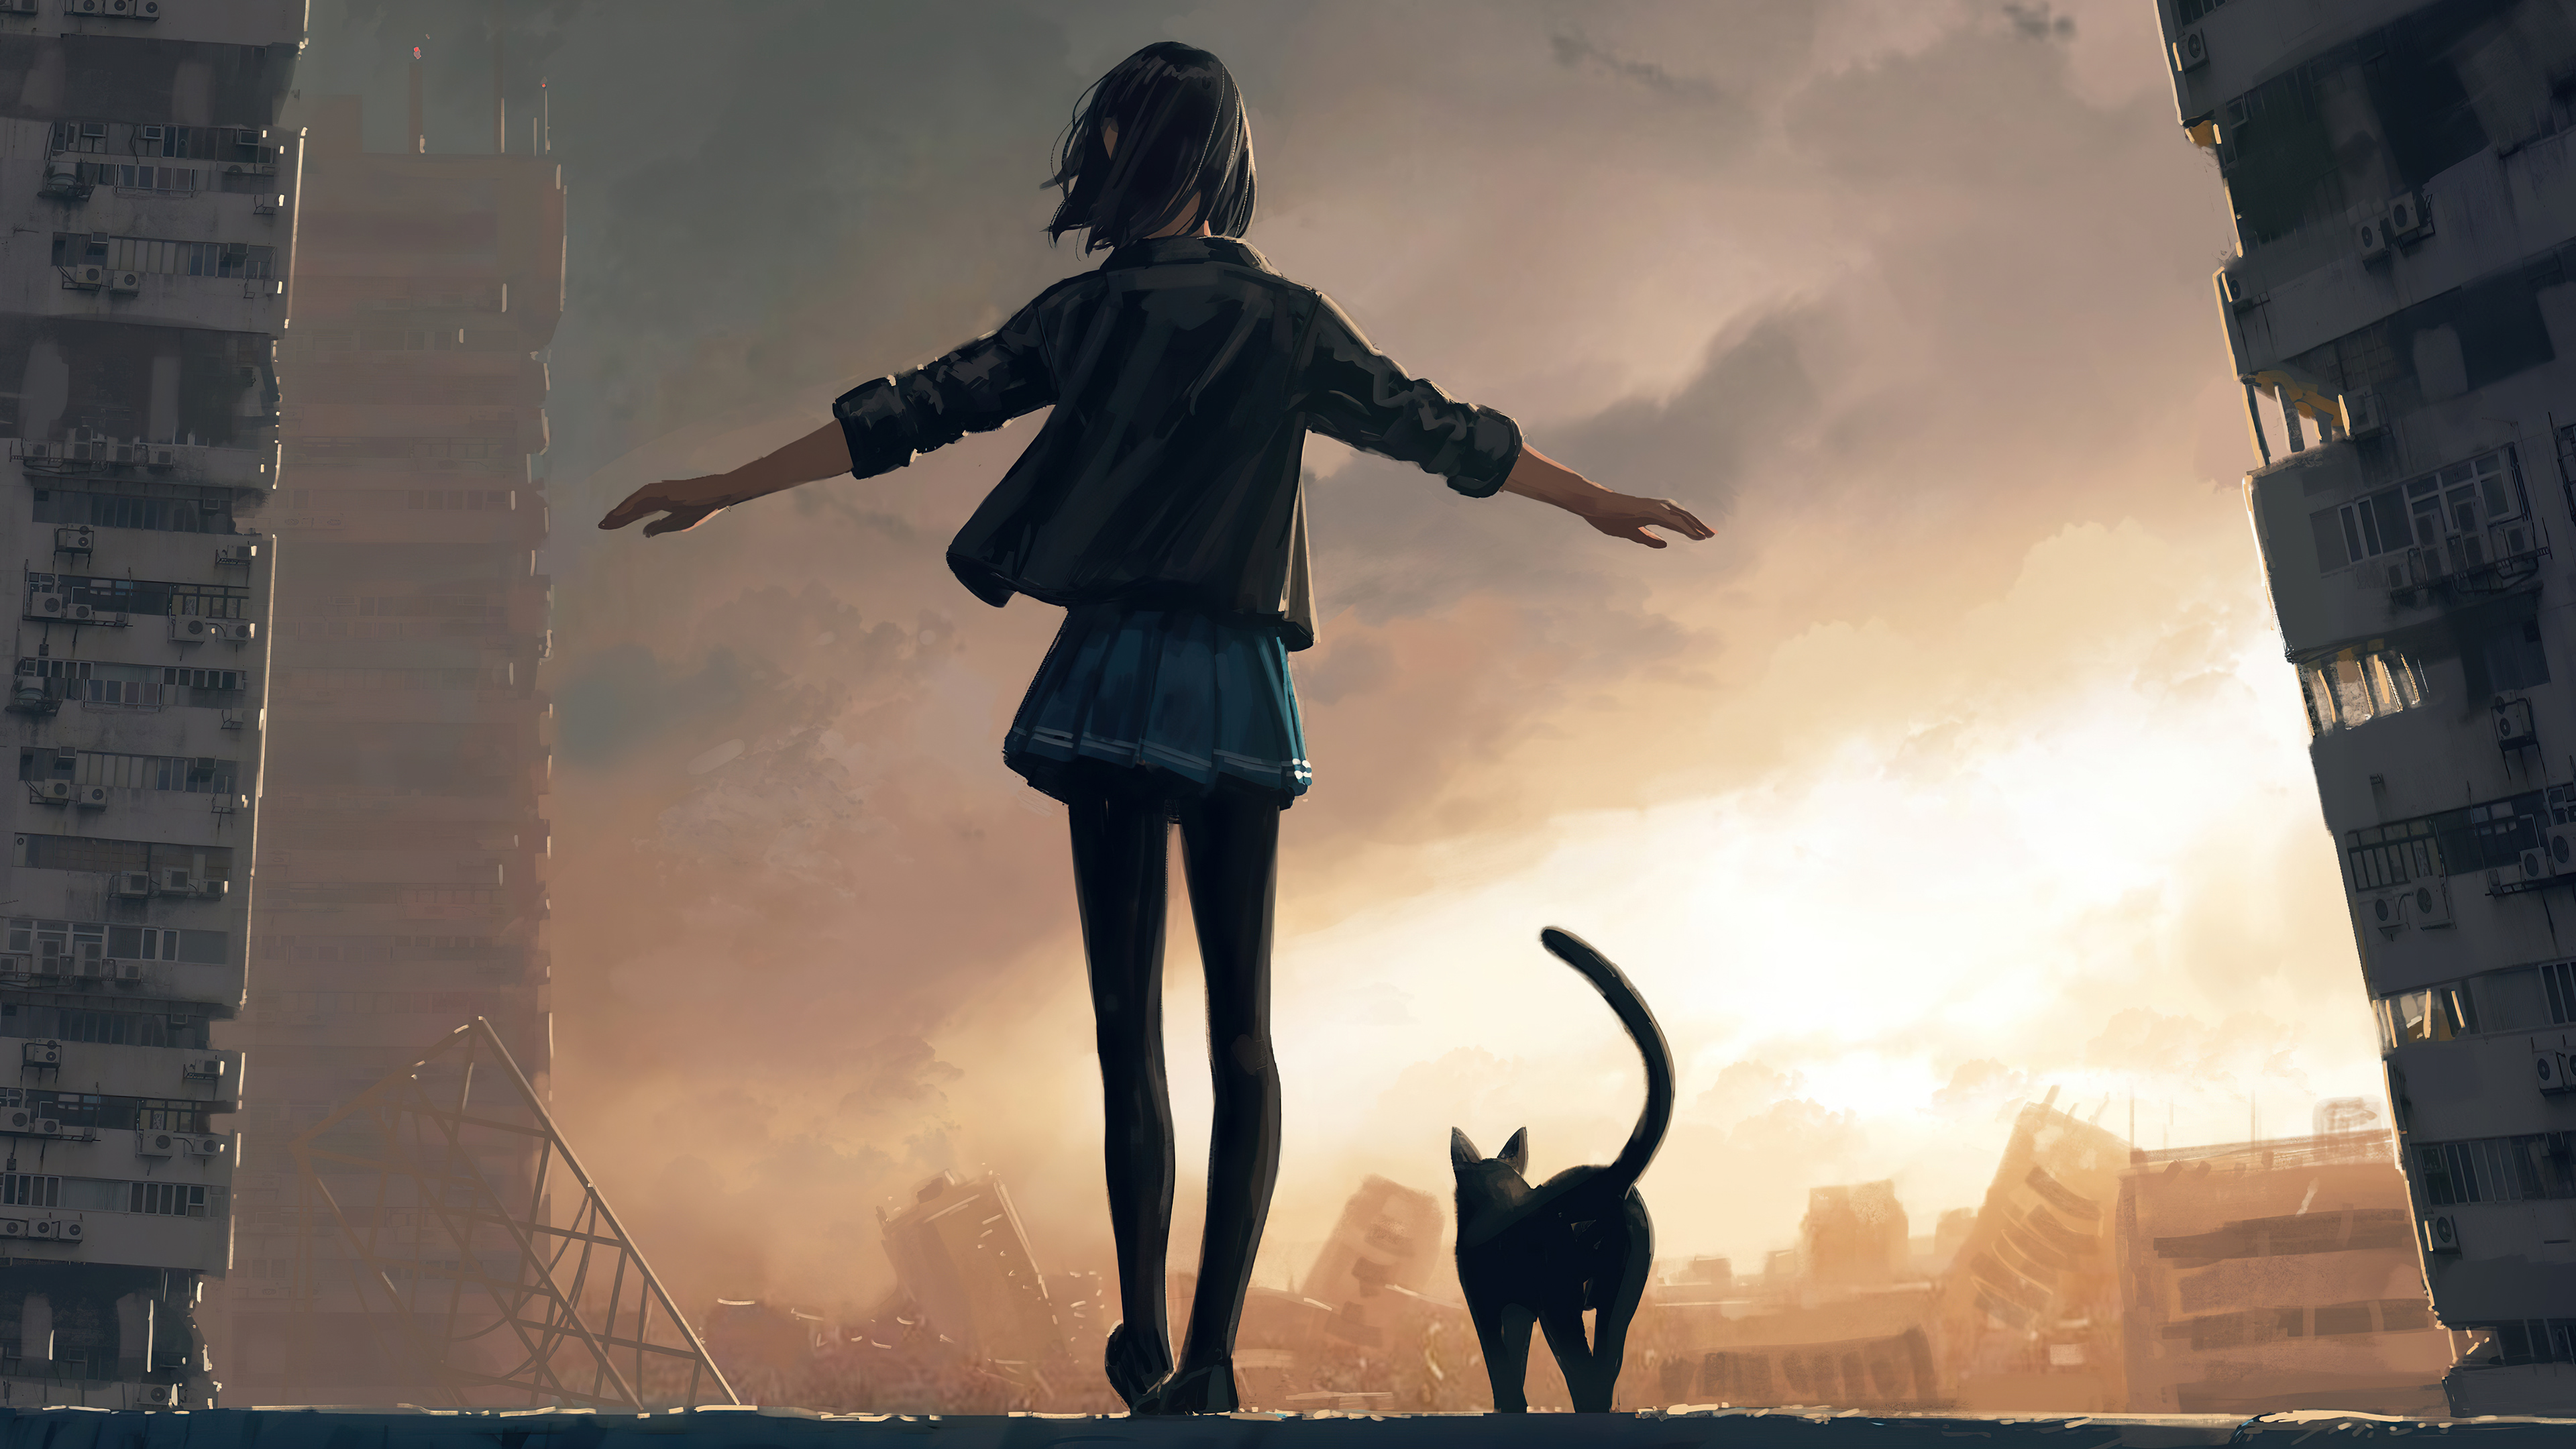 girl walking with cat on roof wall 4k 1608581778 - Girl Walking With Cat On Roof Wall 4k - Girl Walking With Cat On Roof Wall 4k wallpapers